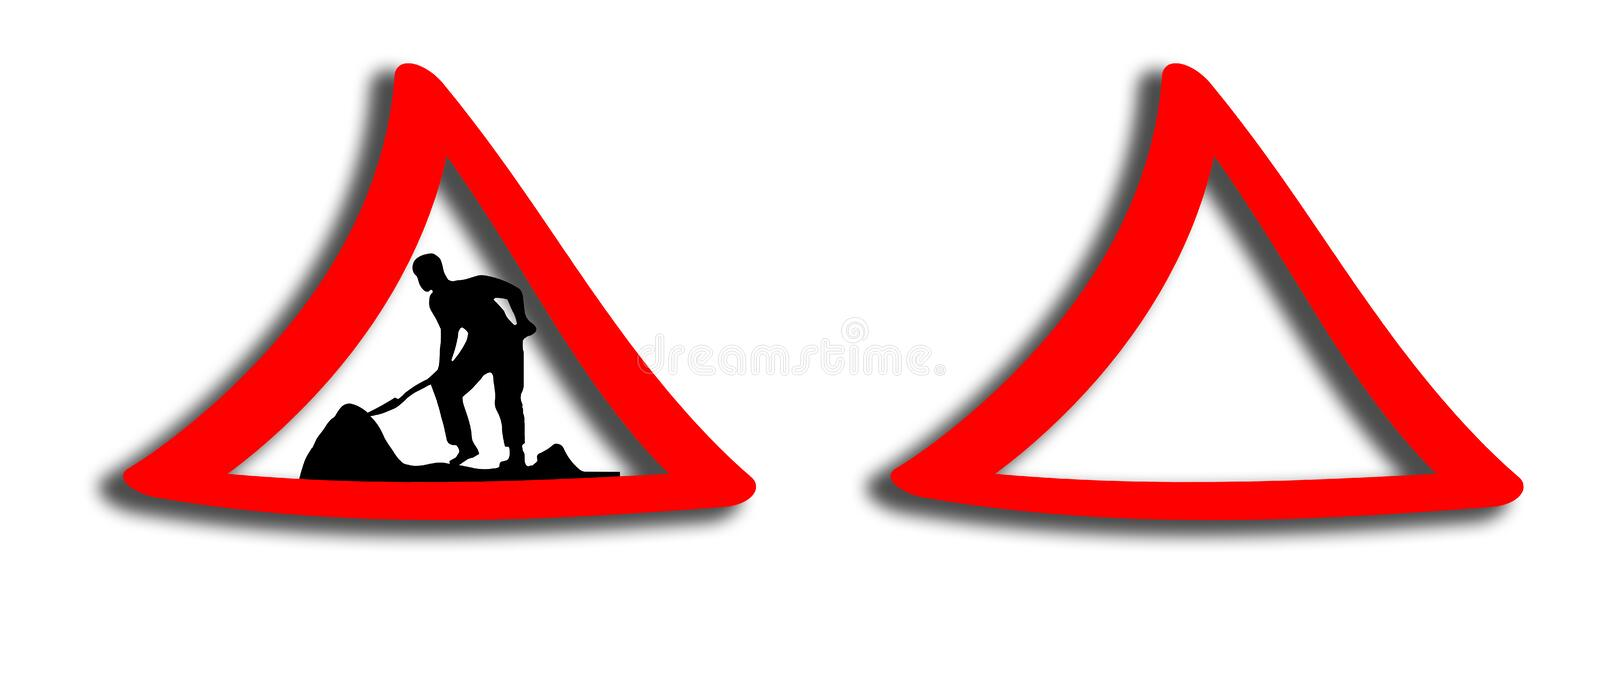 Working road sign illustration stock images